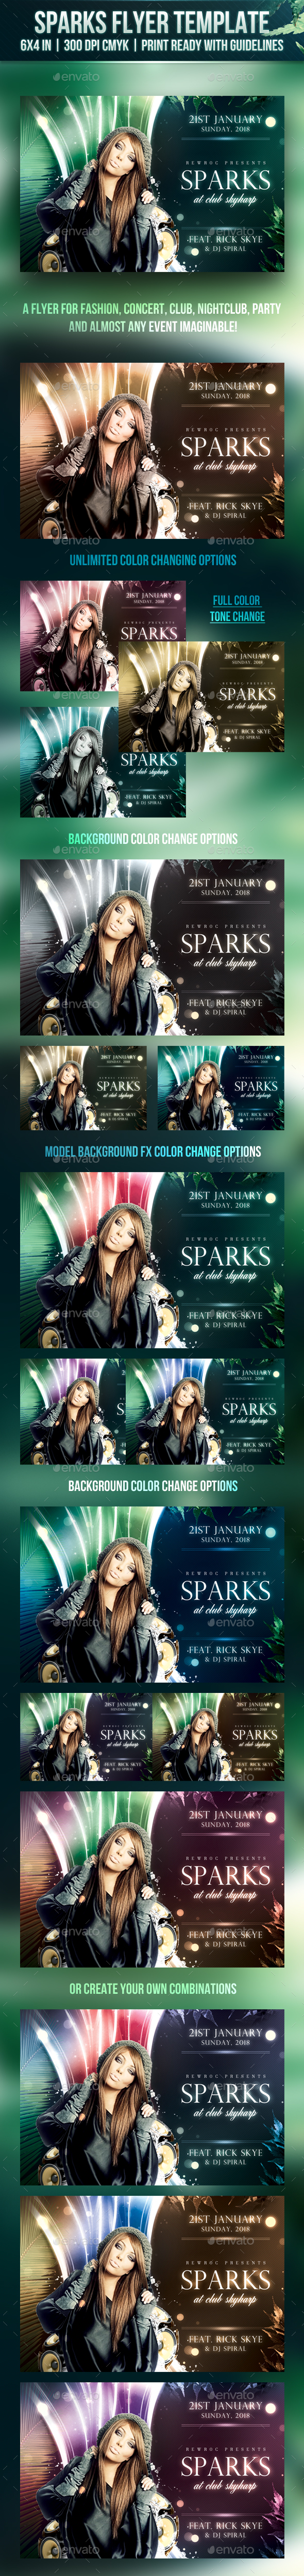 Sparks Flyer Template - Clubs & Parties Events